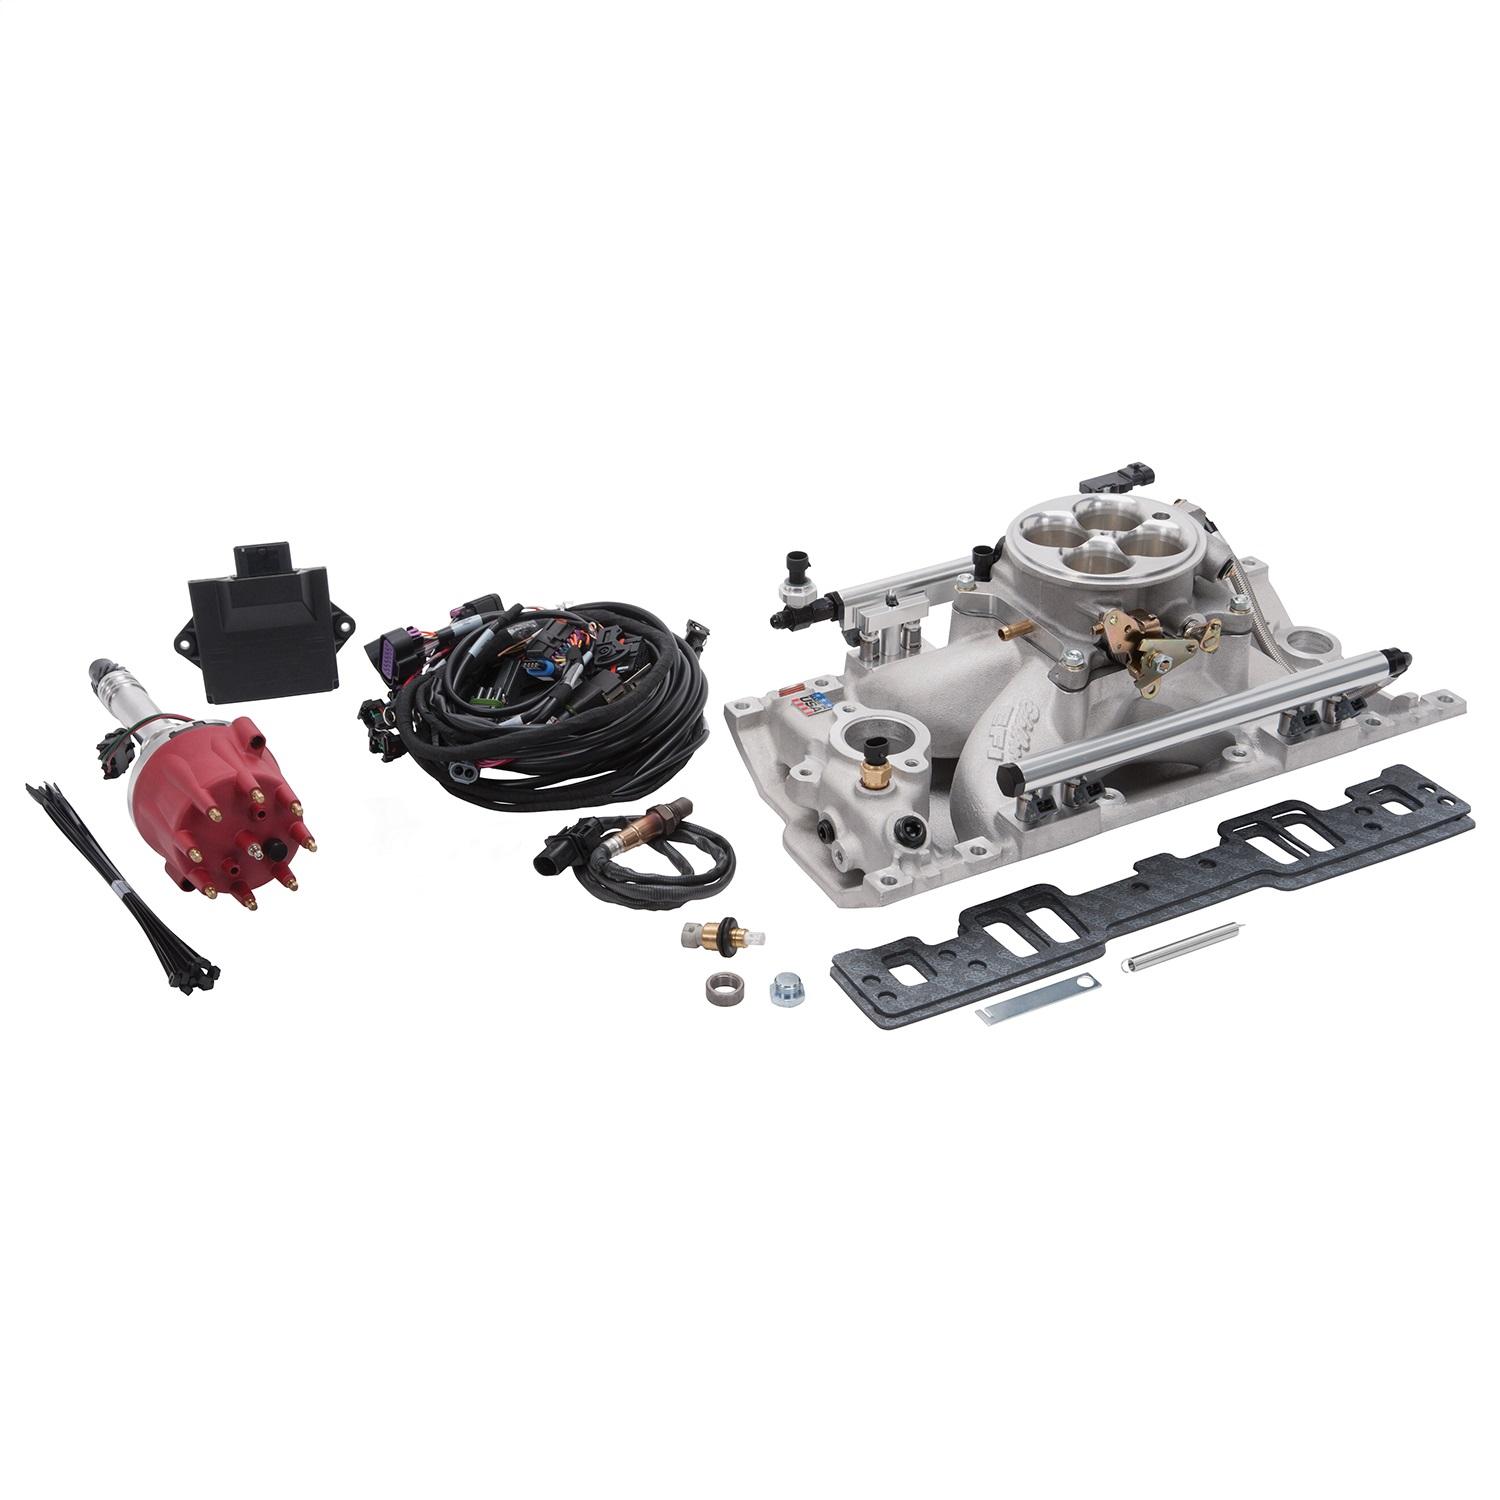 Edelbrock 357800 Pro-Flo 4 EFI Kit for Small-Block Chevy with Vortec/E-Tec Cylinder heads